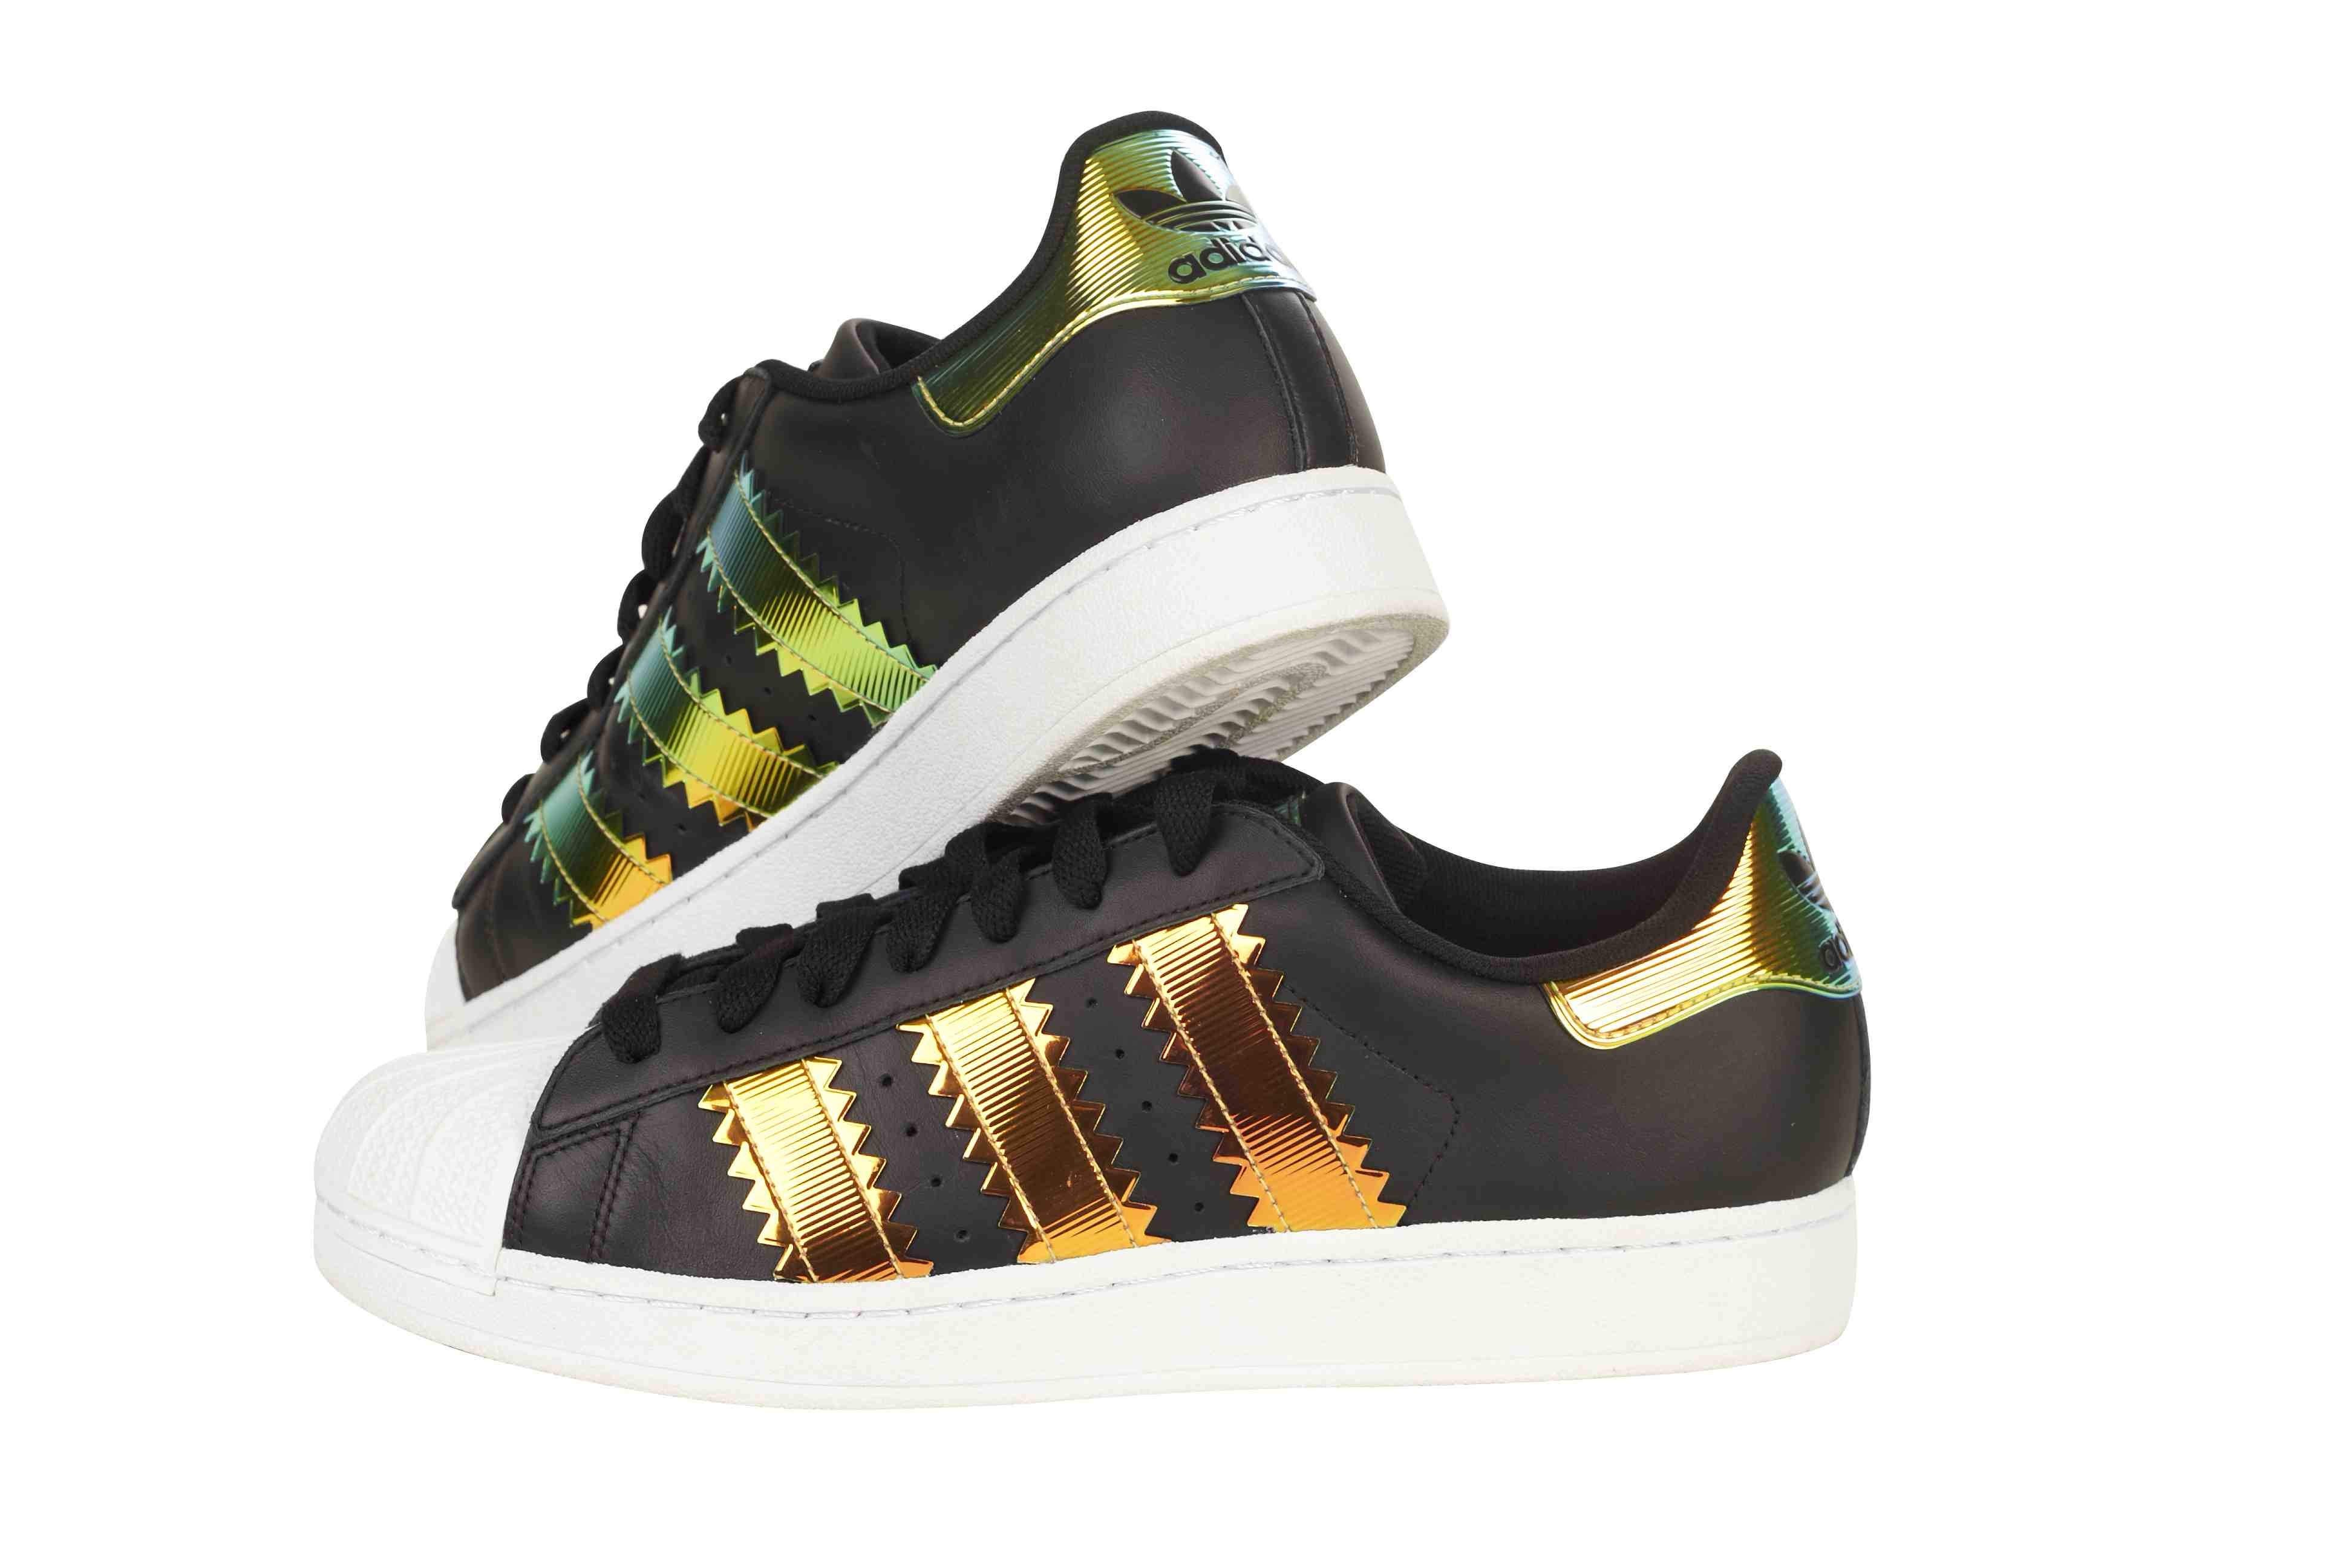 Adidas launches Superstar